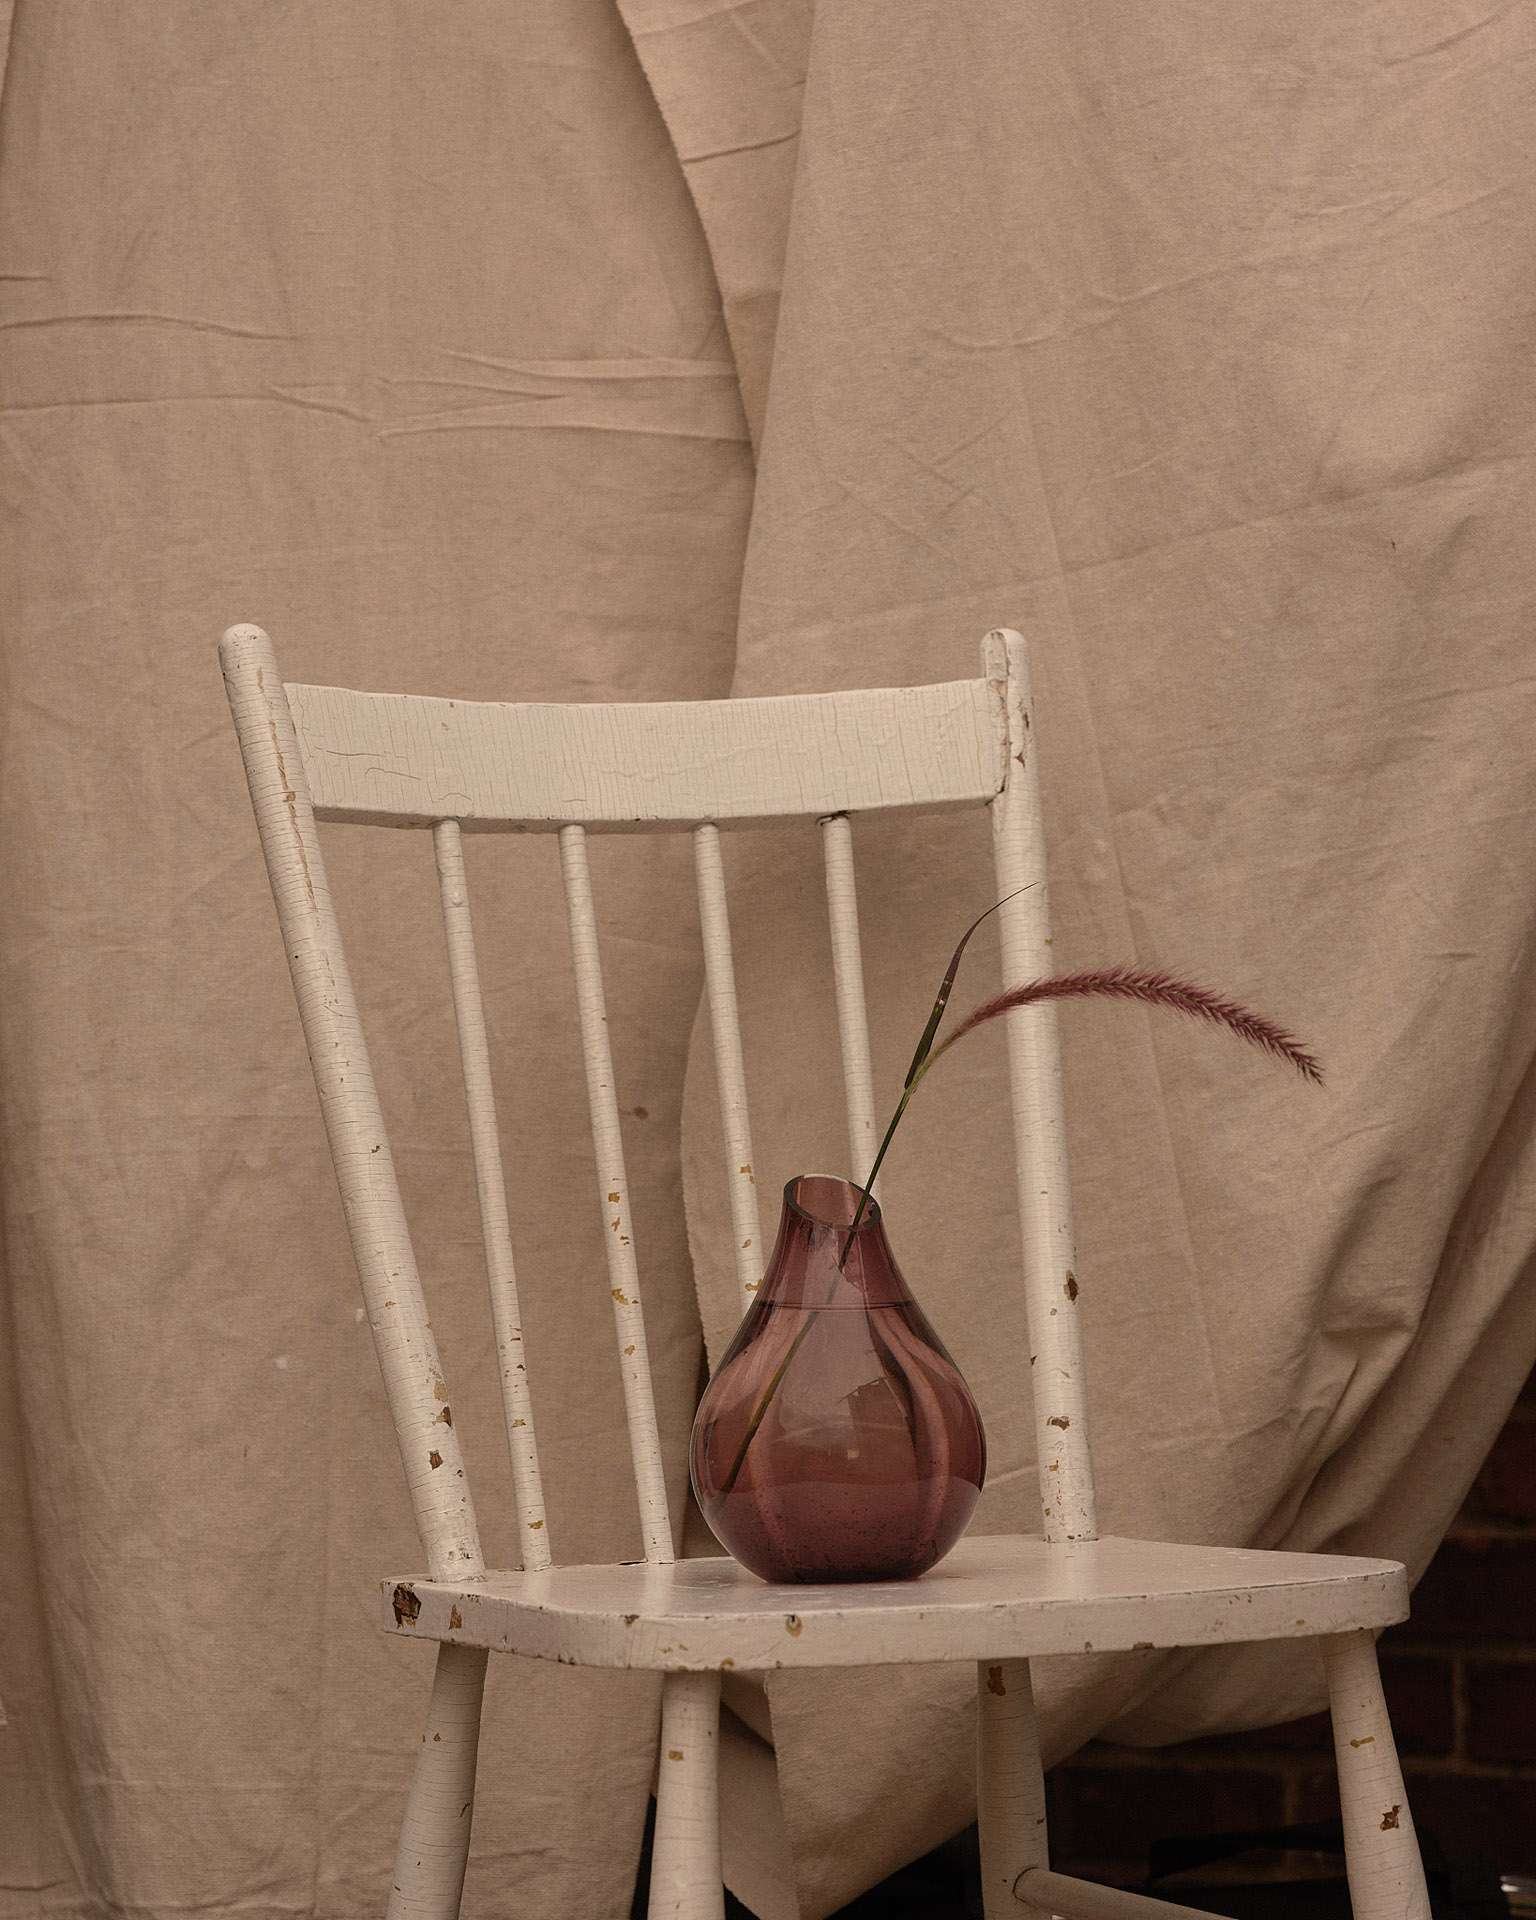 purple vase on white chair with single branch in it by Maxyme G Delisle for Flanelle Magazine